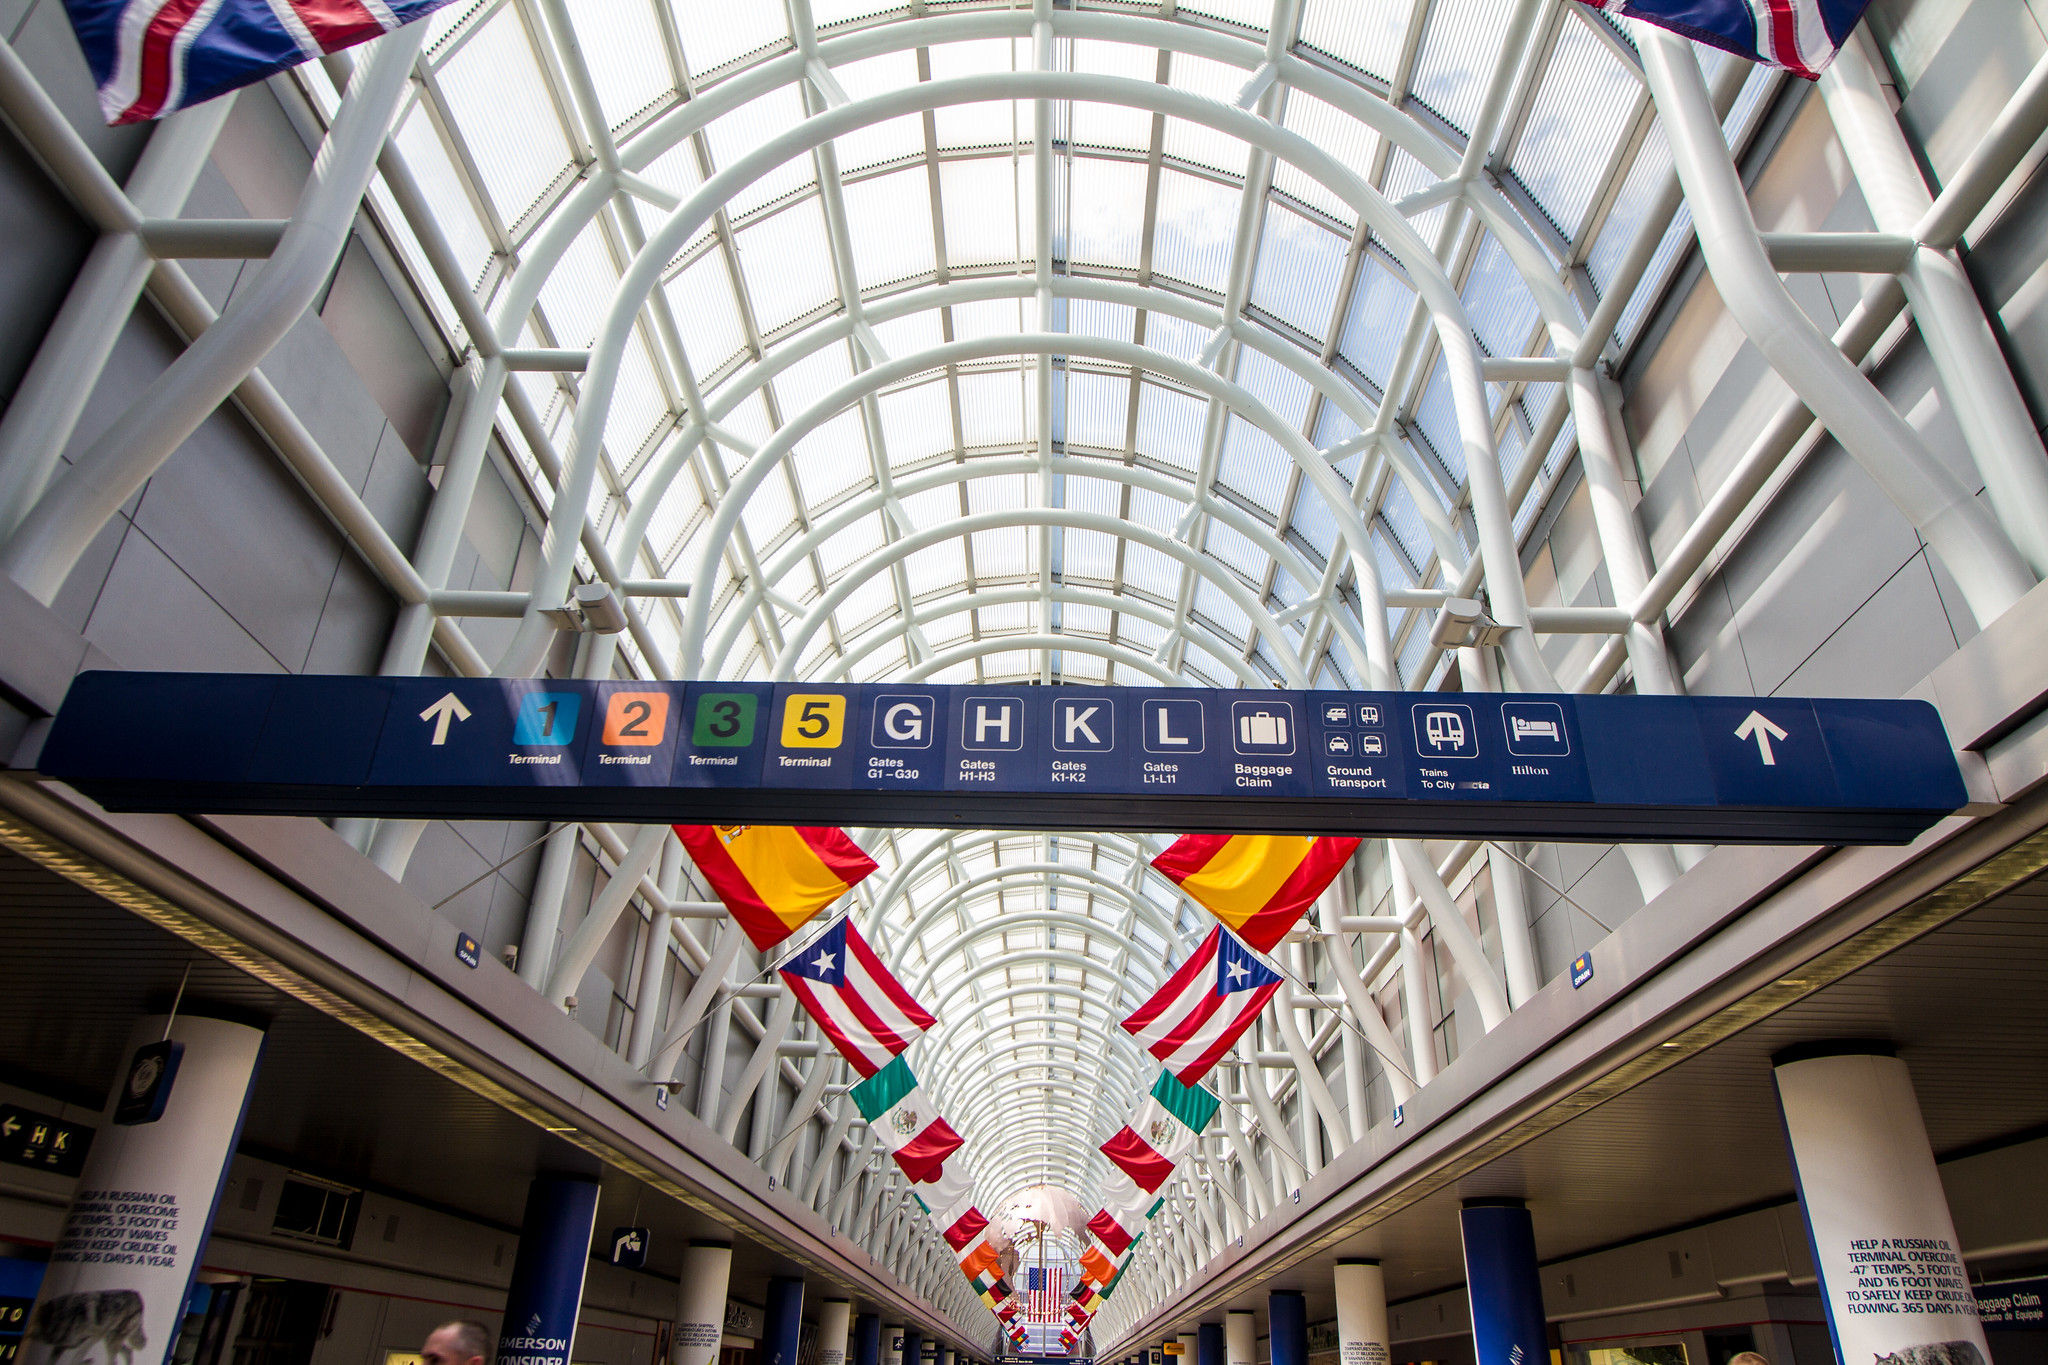 International flags at Chicago airport